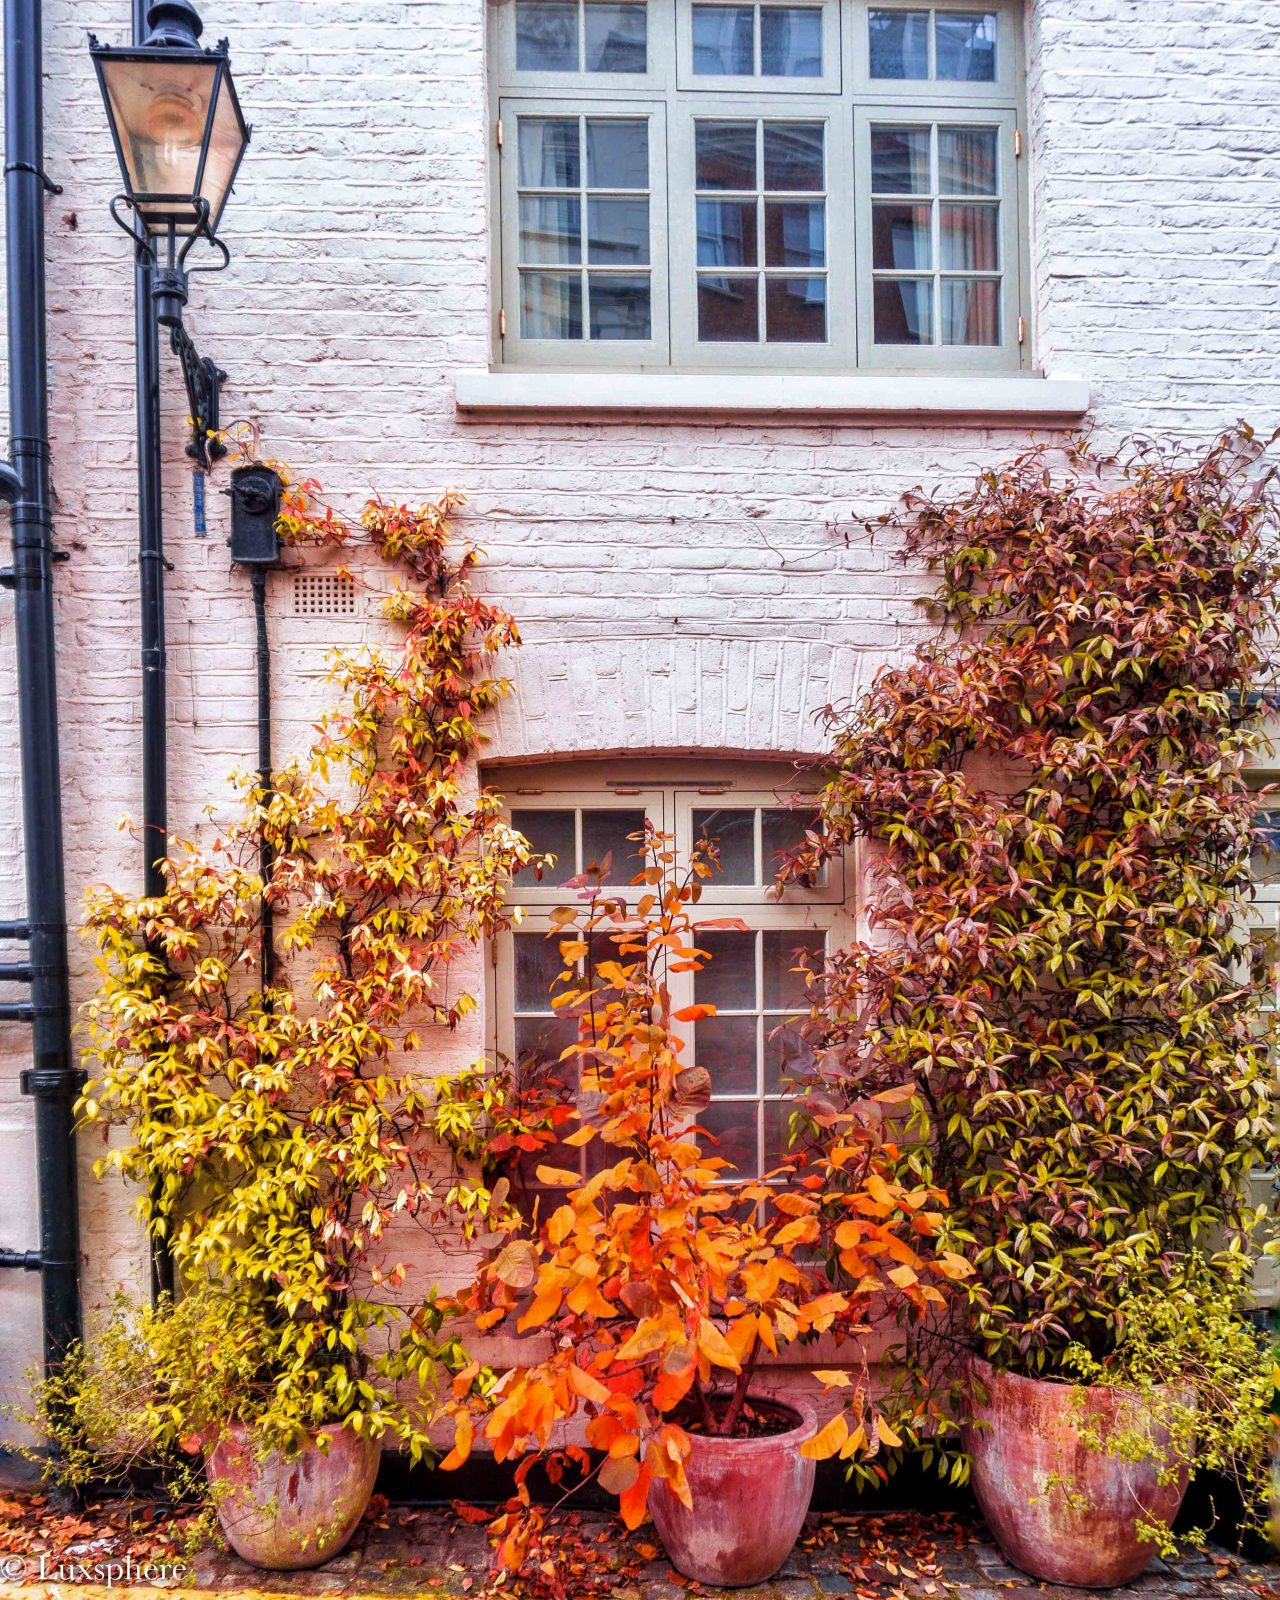 Best streets in London in Autumn Atherston mews